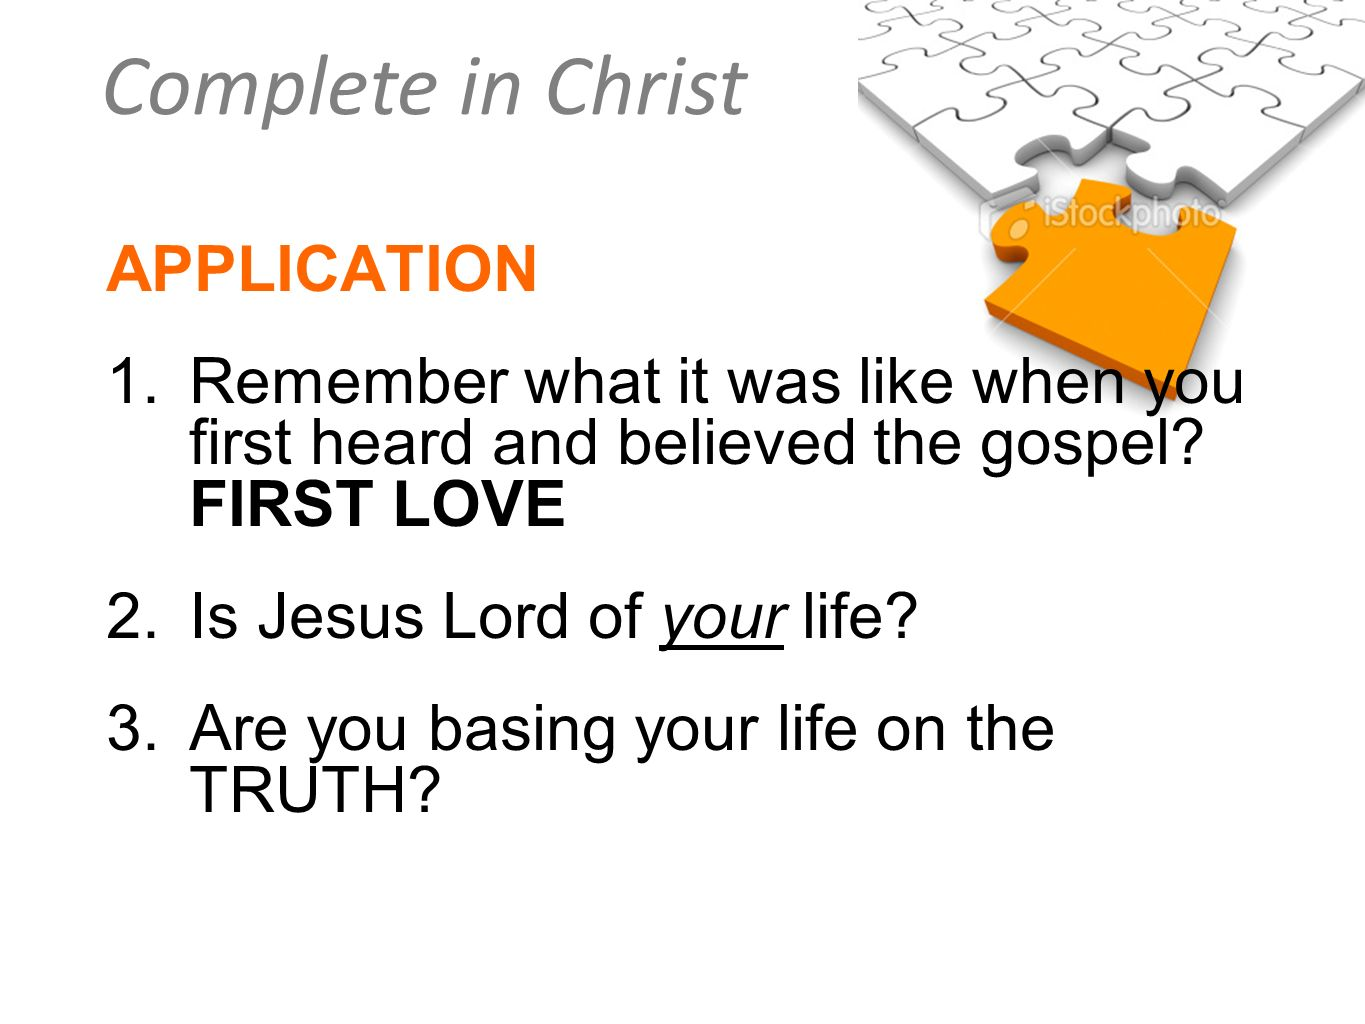 APPLICATION 1. Remember what it was like when you first heard and believed the gospel FIRST LOVE.